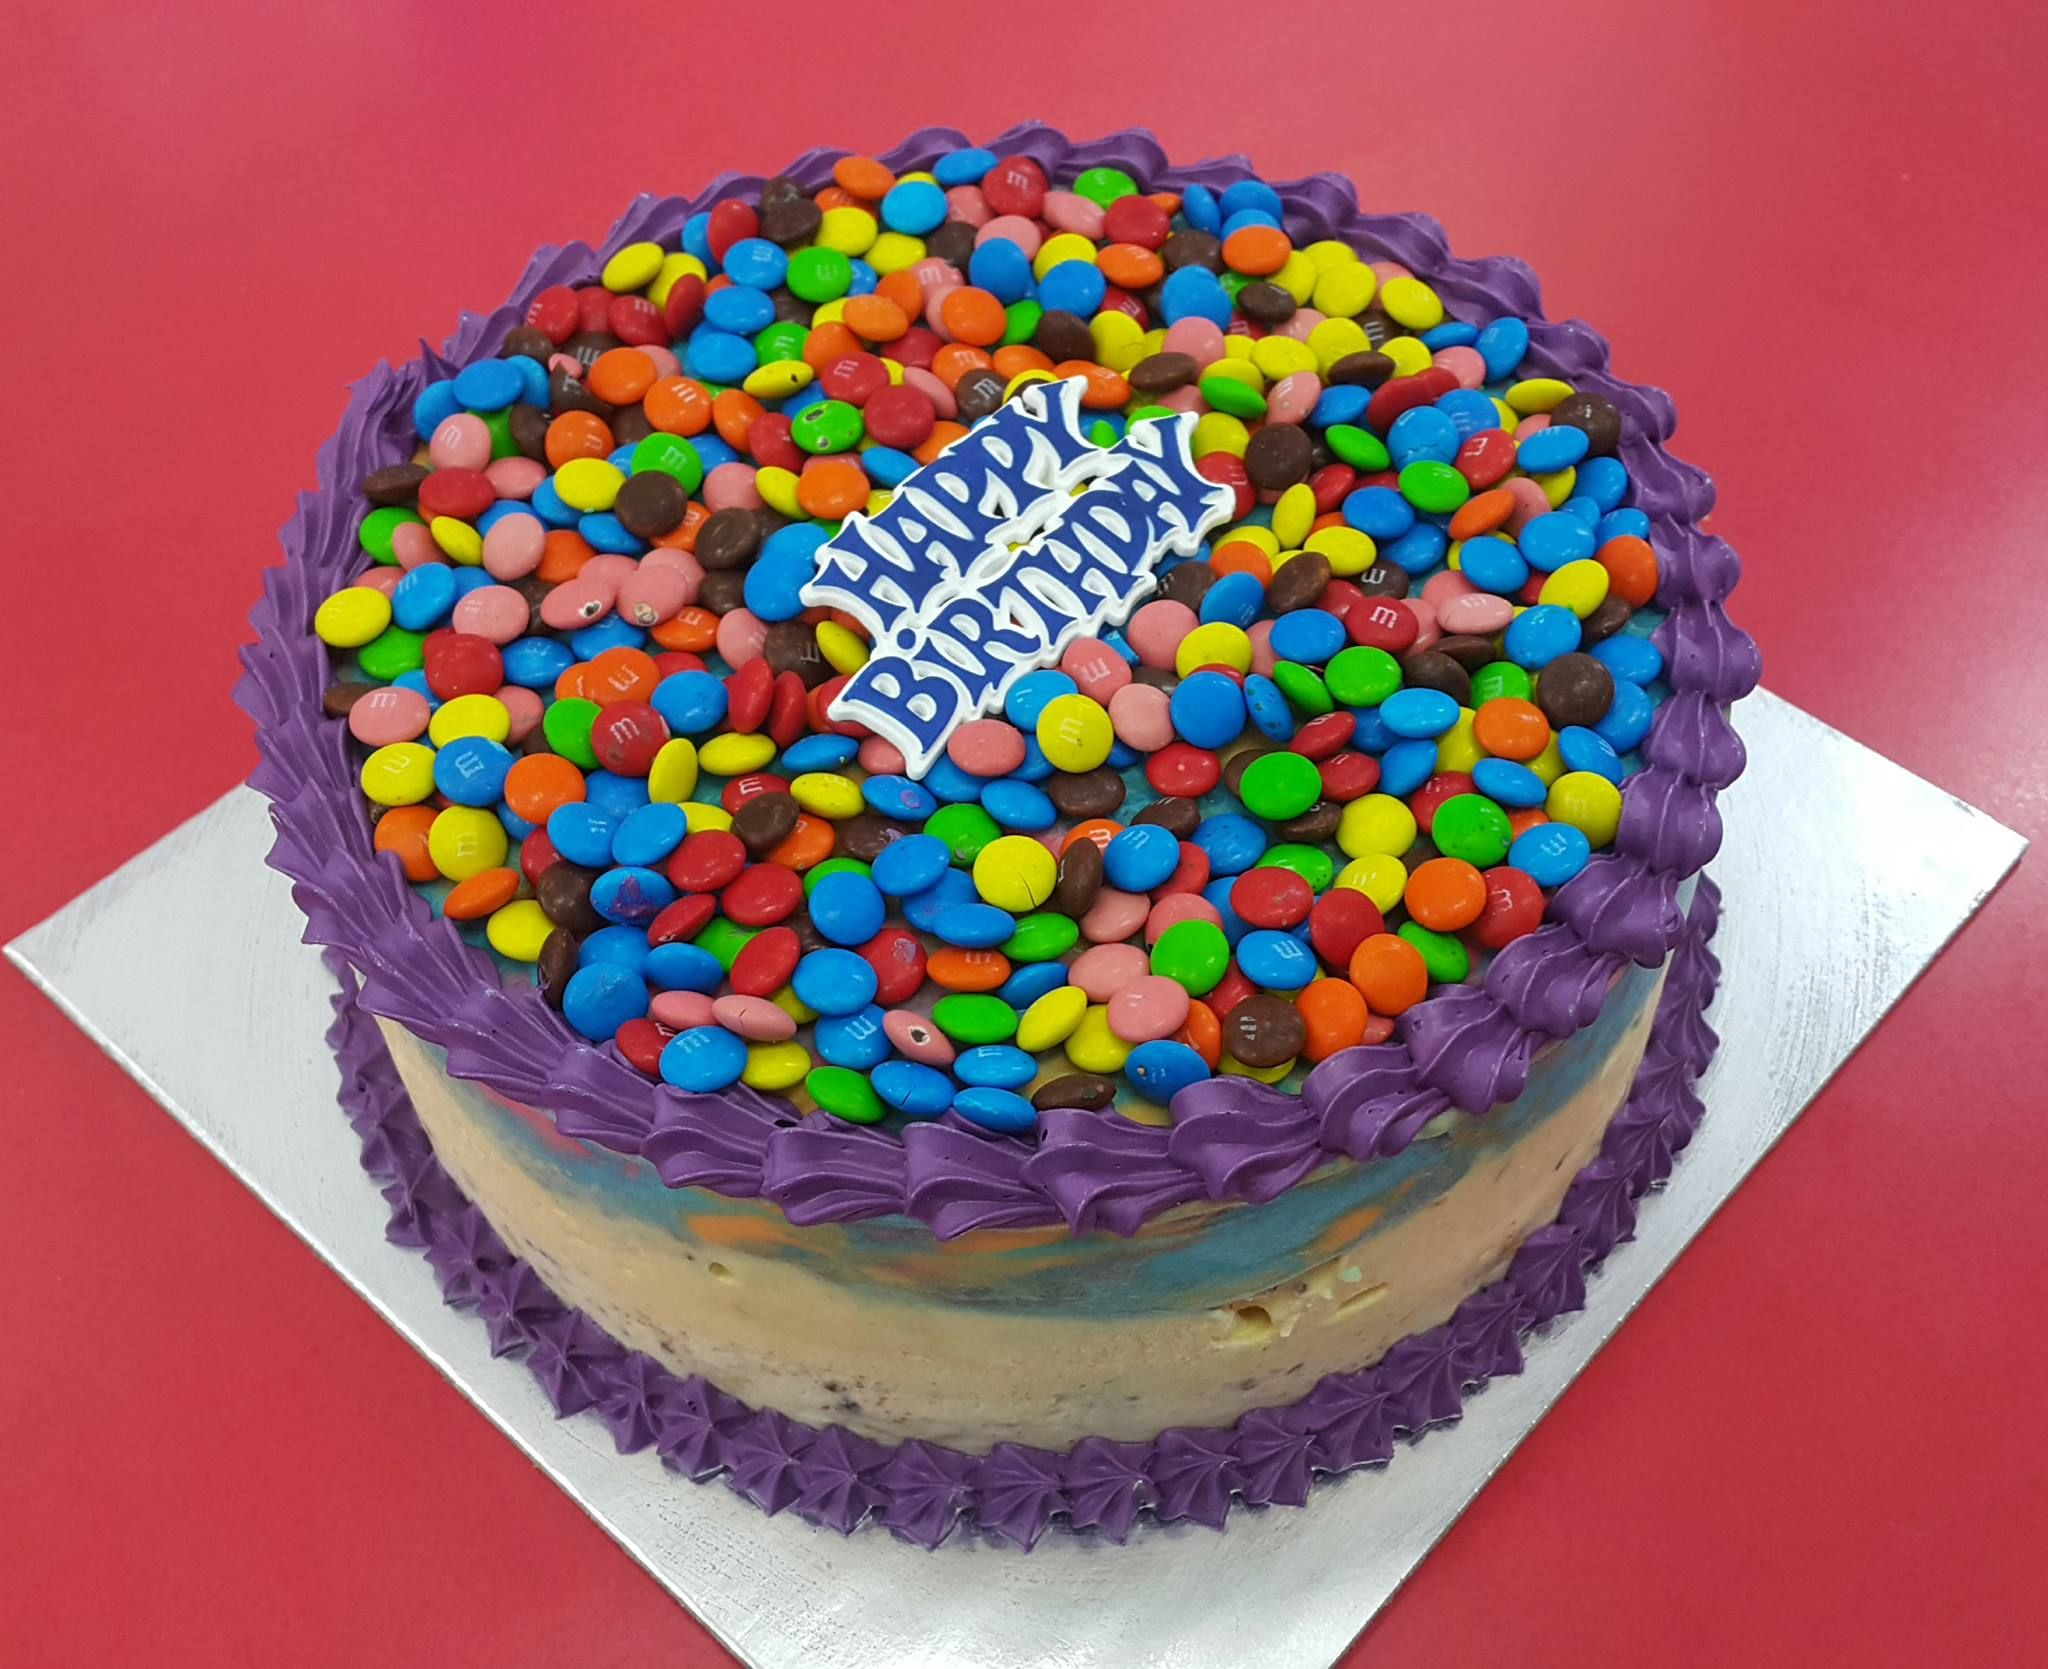 Cold Rock Ice Cream Birthday Cake Topped With Your Favourite Mini